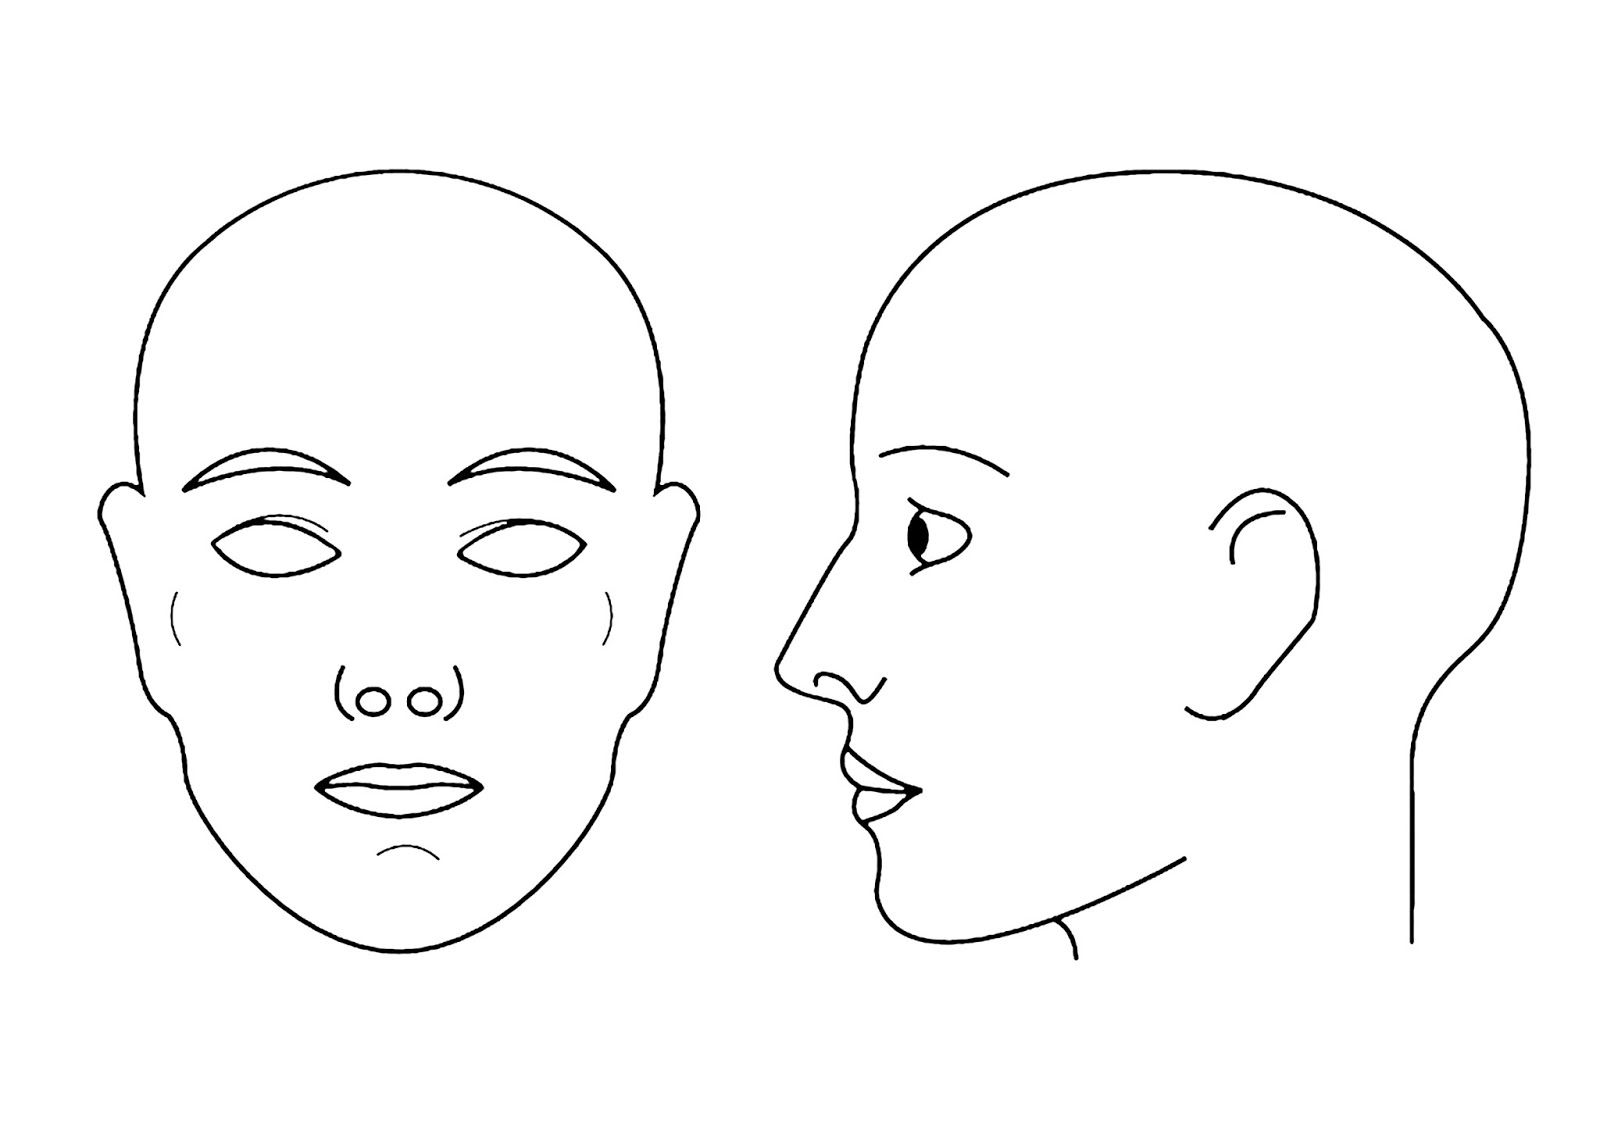 Uniblank Face Diagram